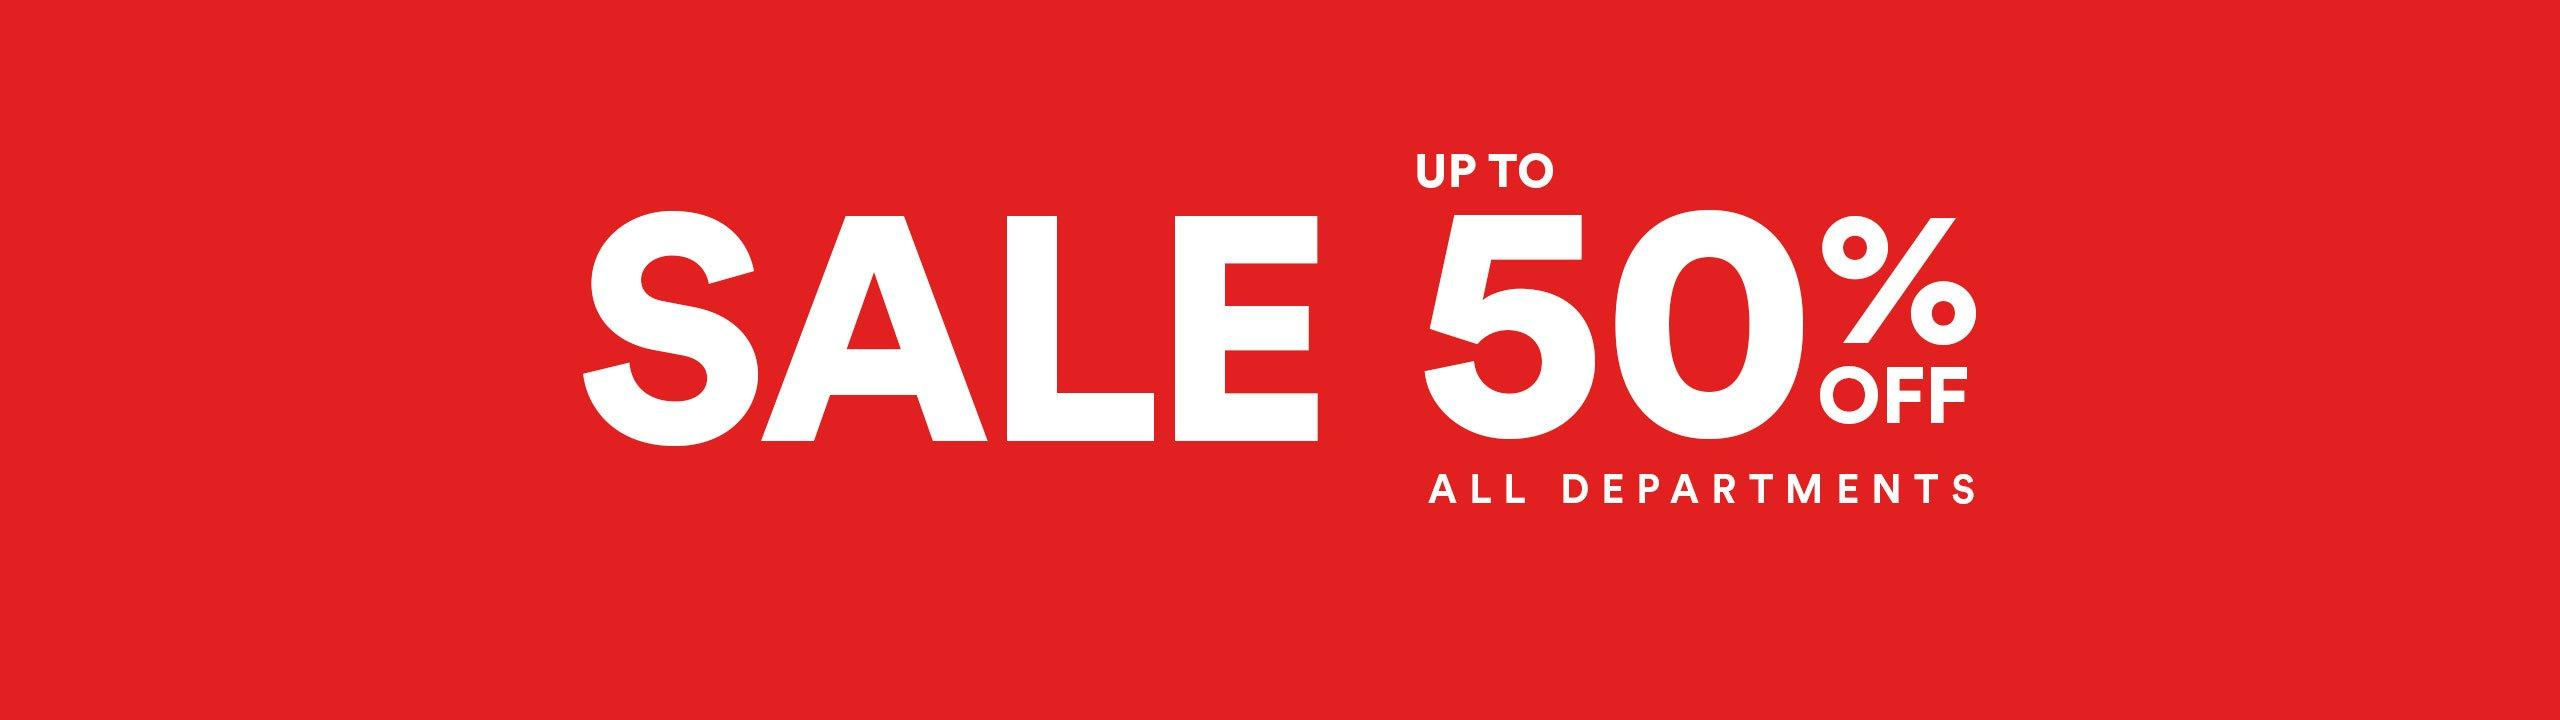 Sale - Up to 50% Off All Departments